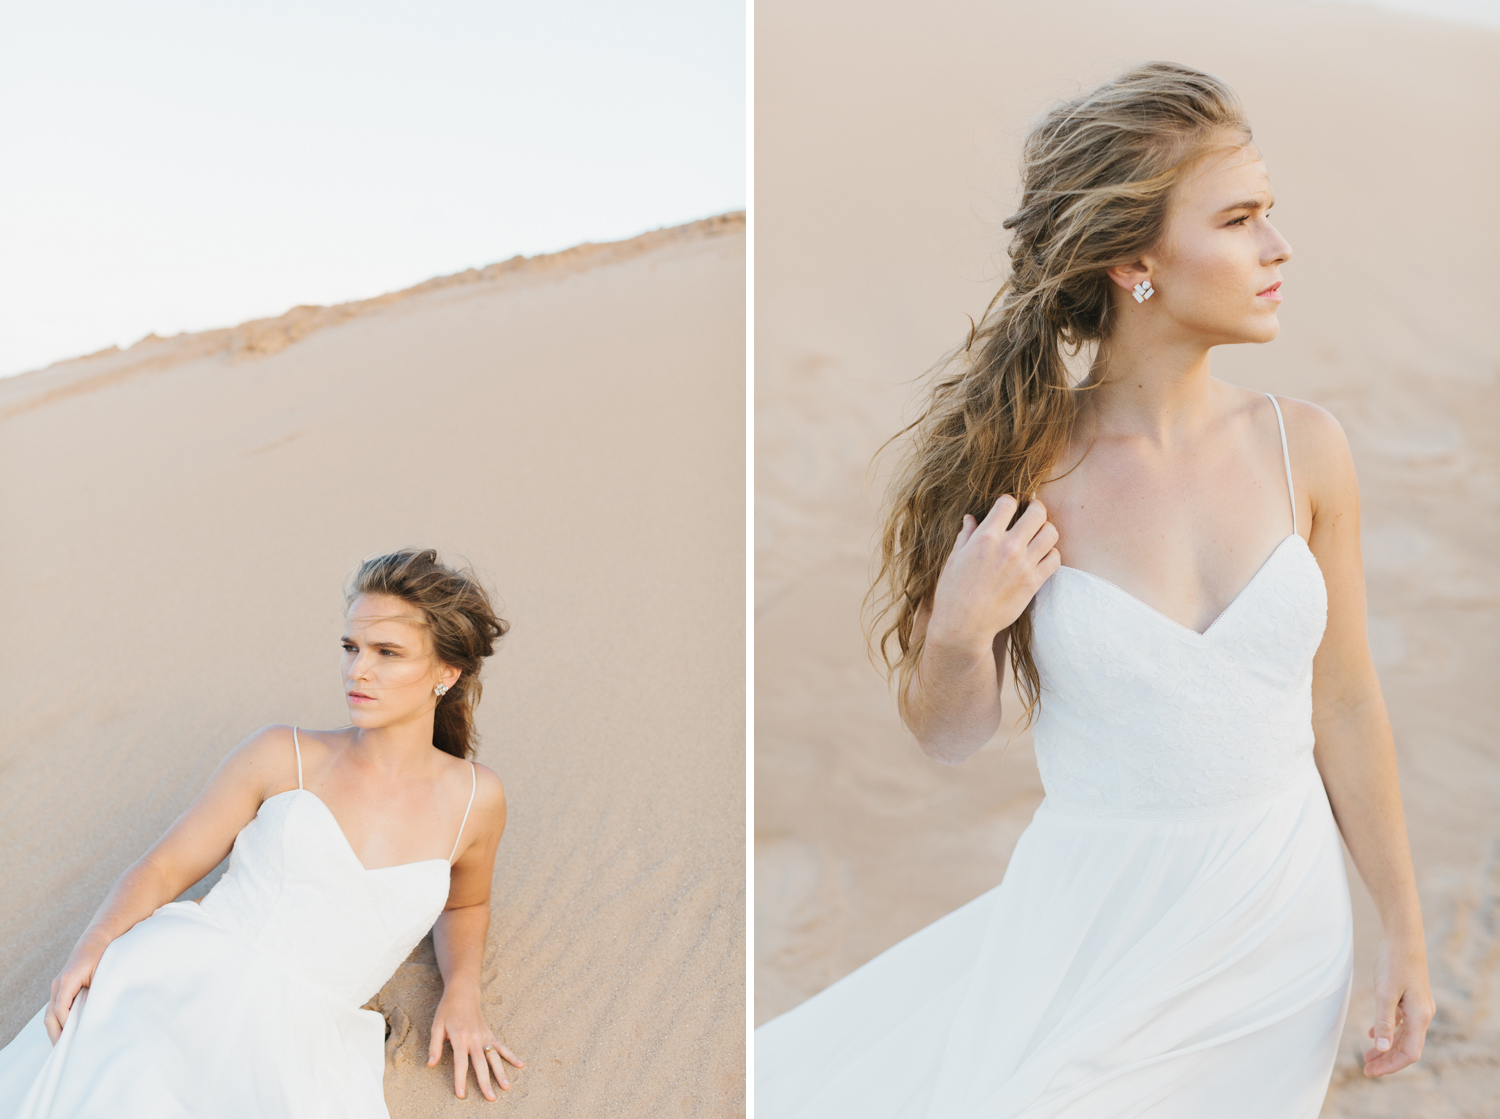 Sleeping Bear Dunes Bridal Portraits Wedding Photographer Mae Stier-012.jpg